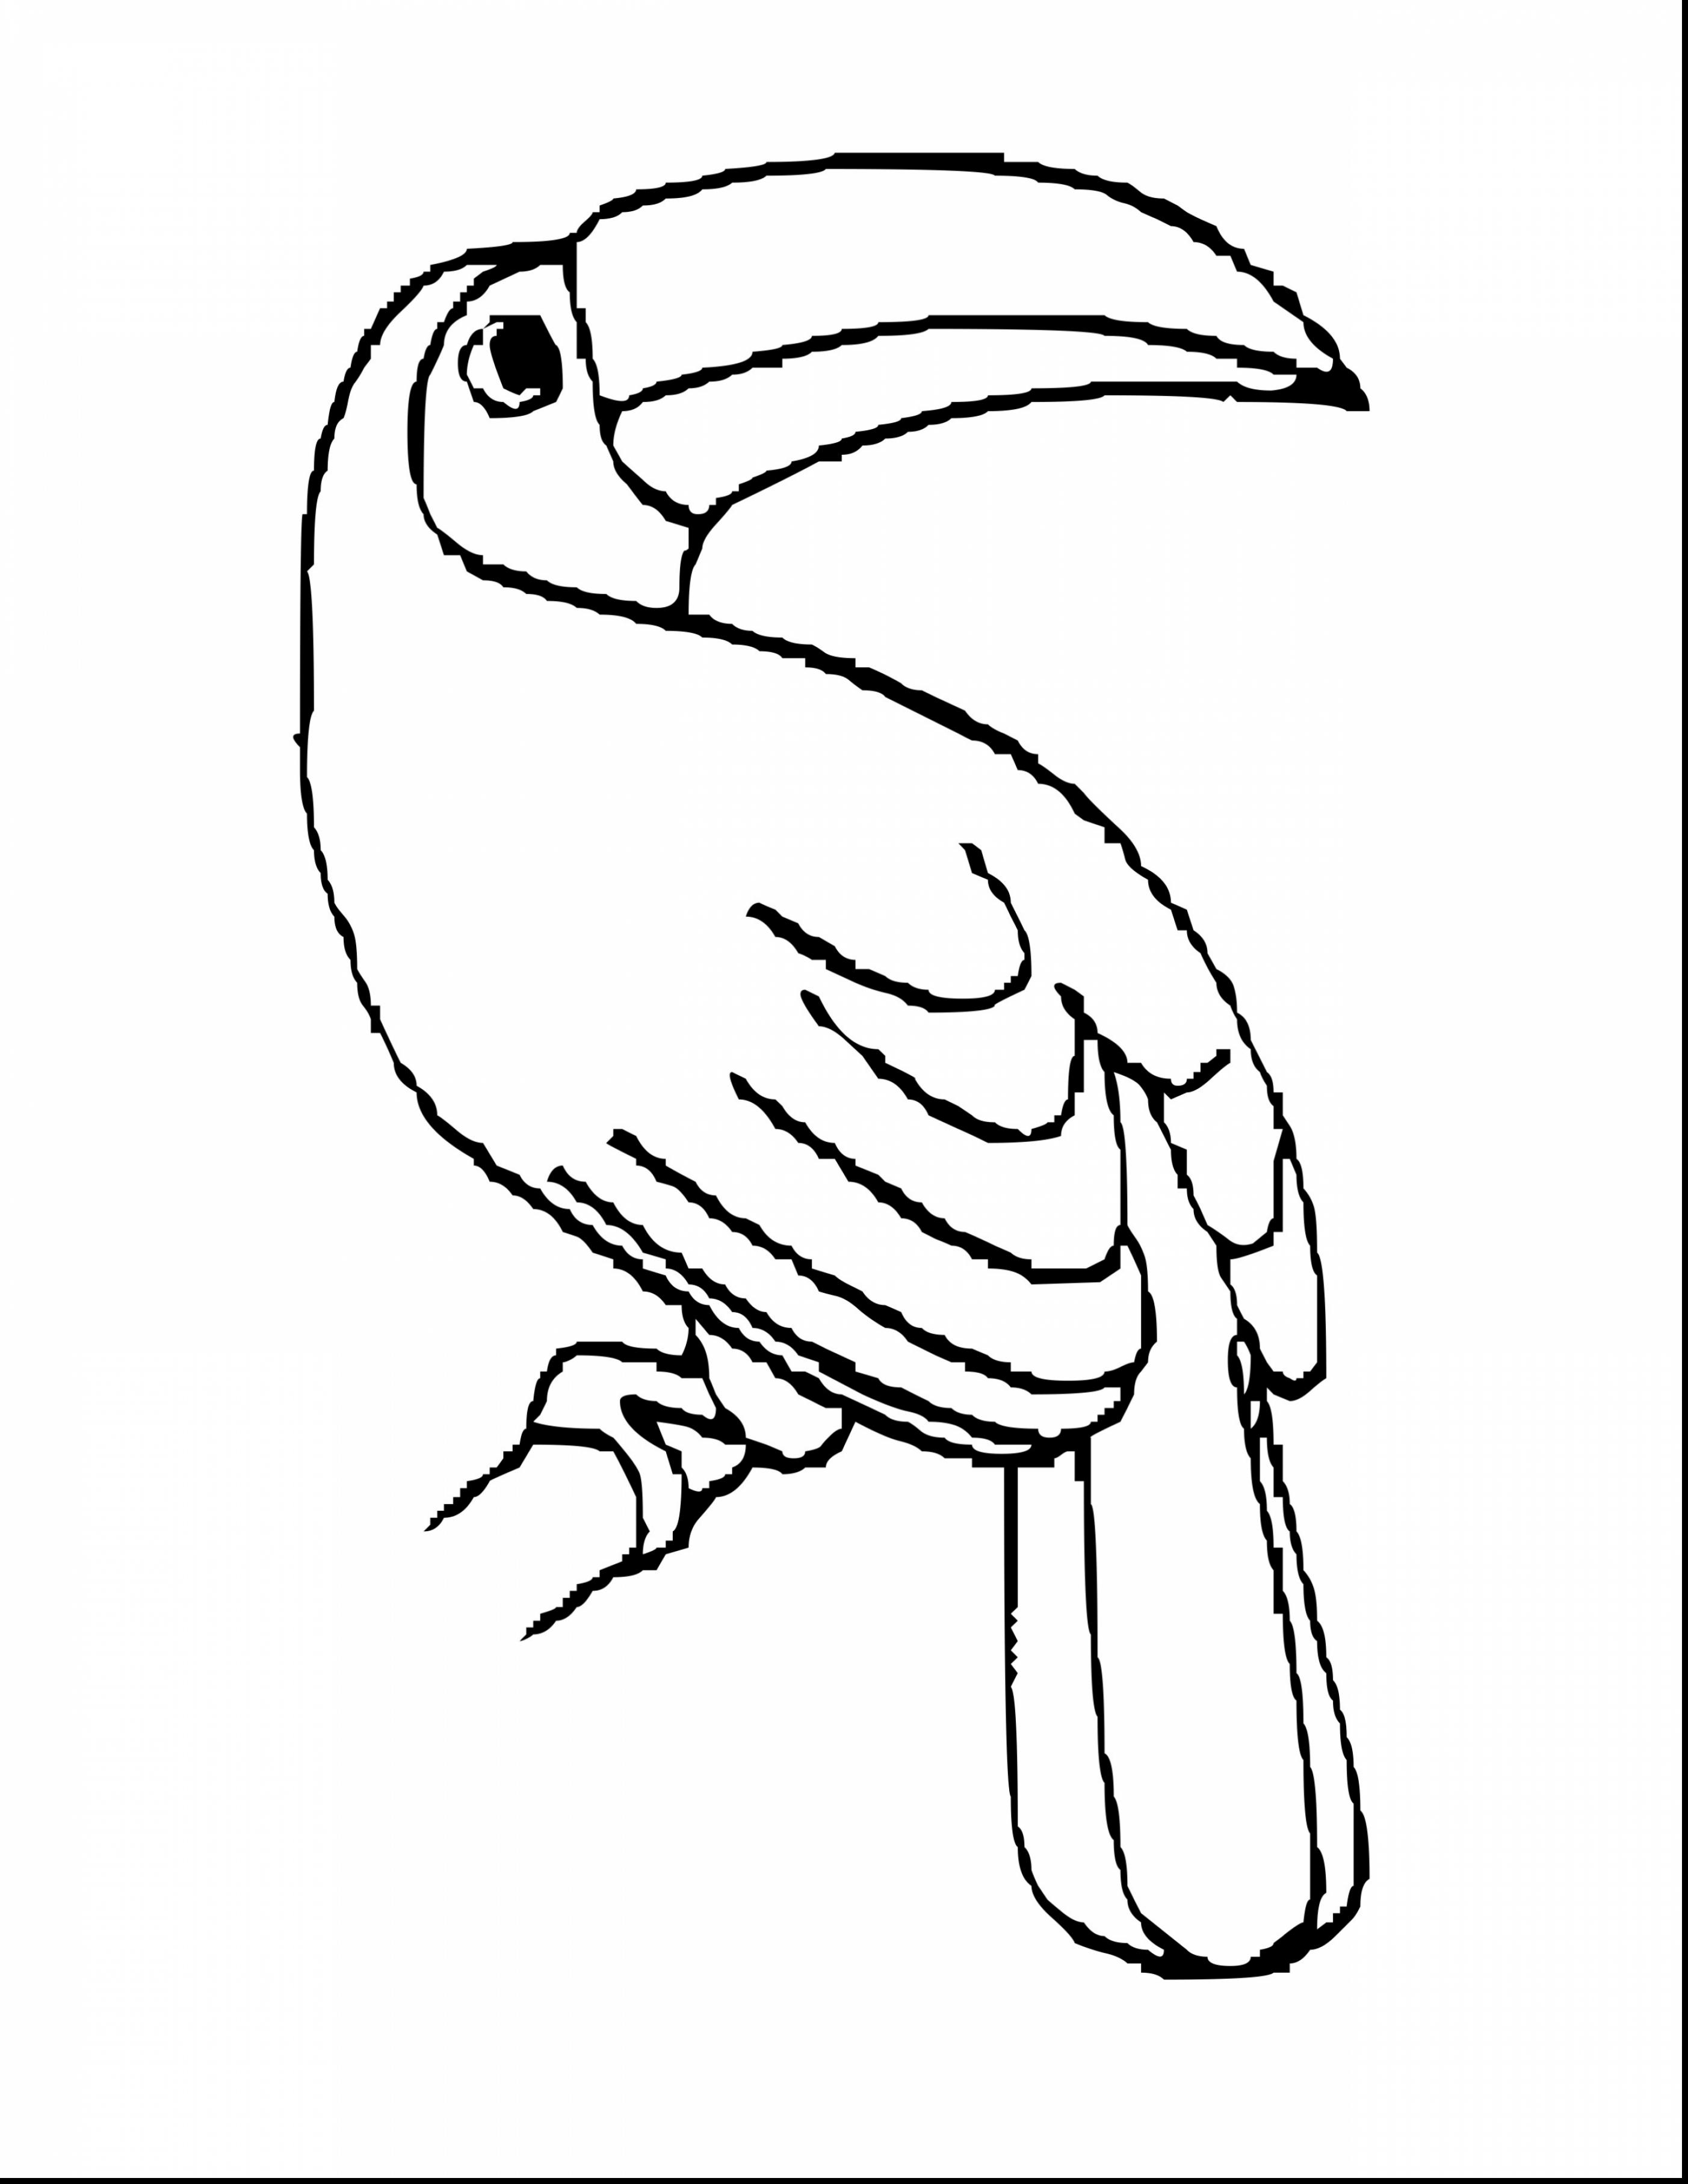 Toucan clipart black and white #15